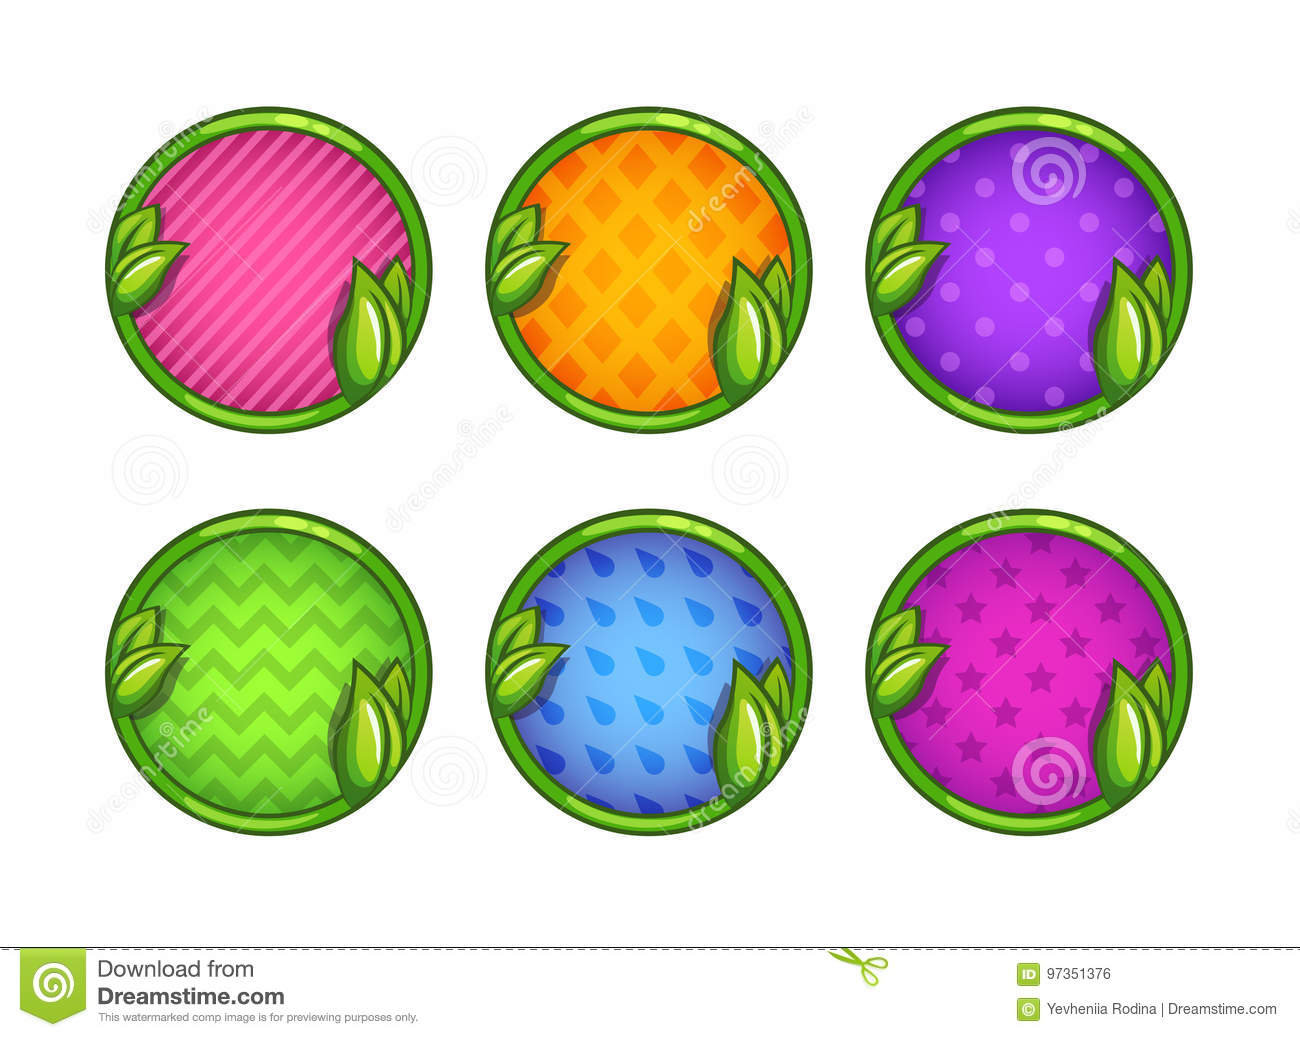 Cartoon colorful round buttons set